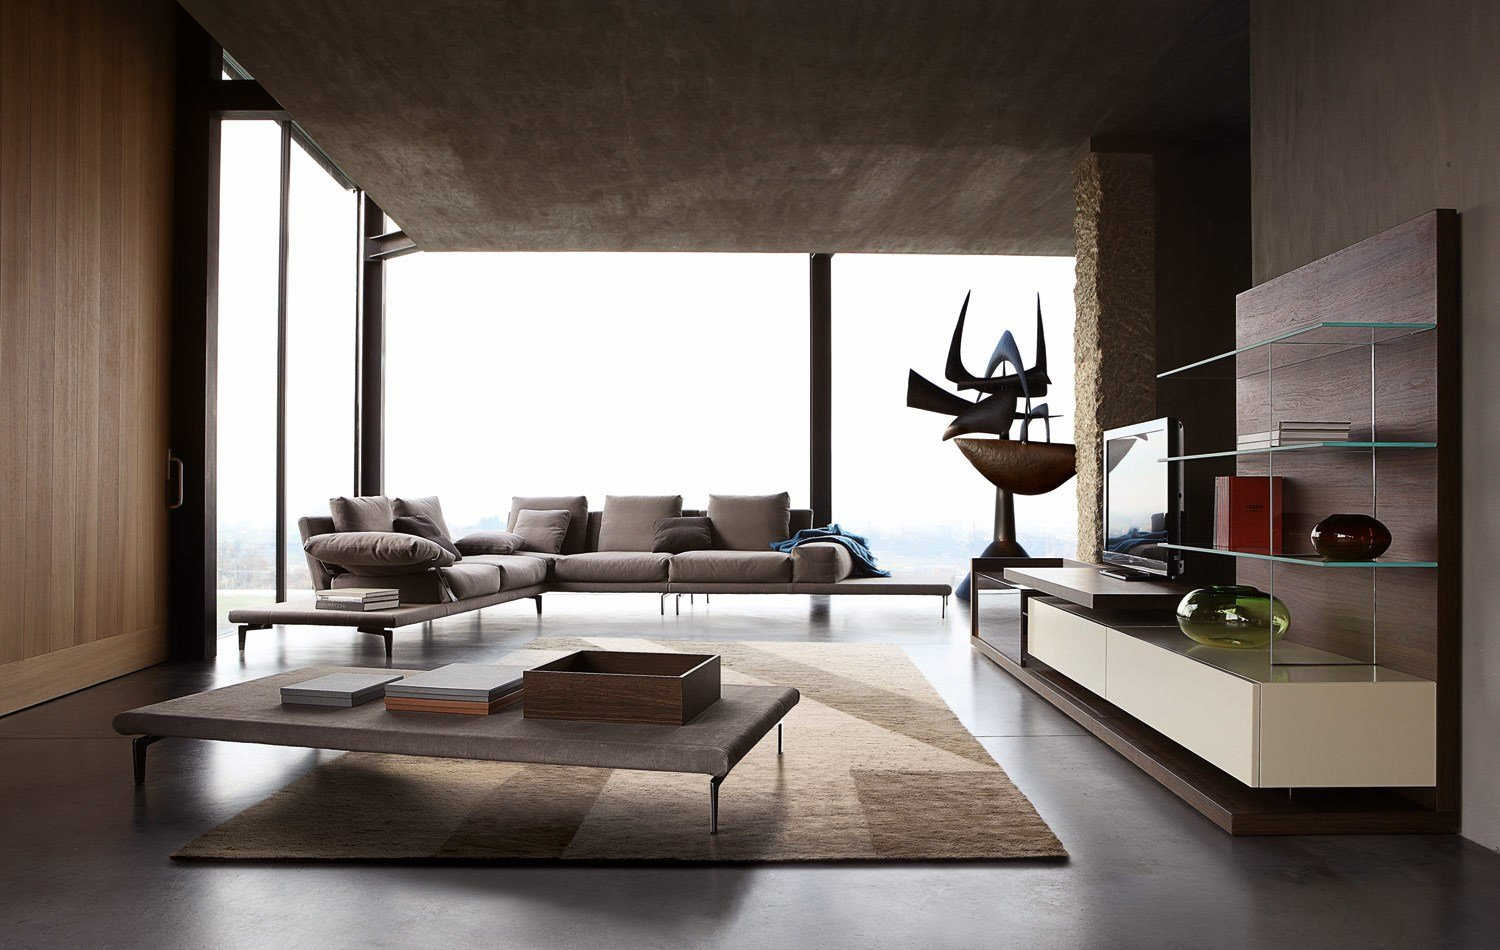 sectional modular sofa echoes by roche bobois design mauro lipparini. Black Bedroom Furniture Sets. Home Design Ideas